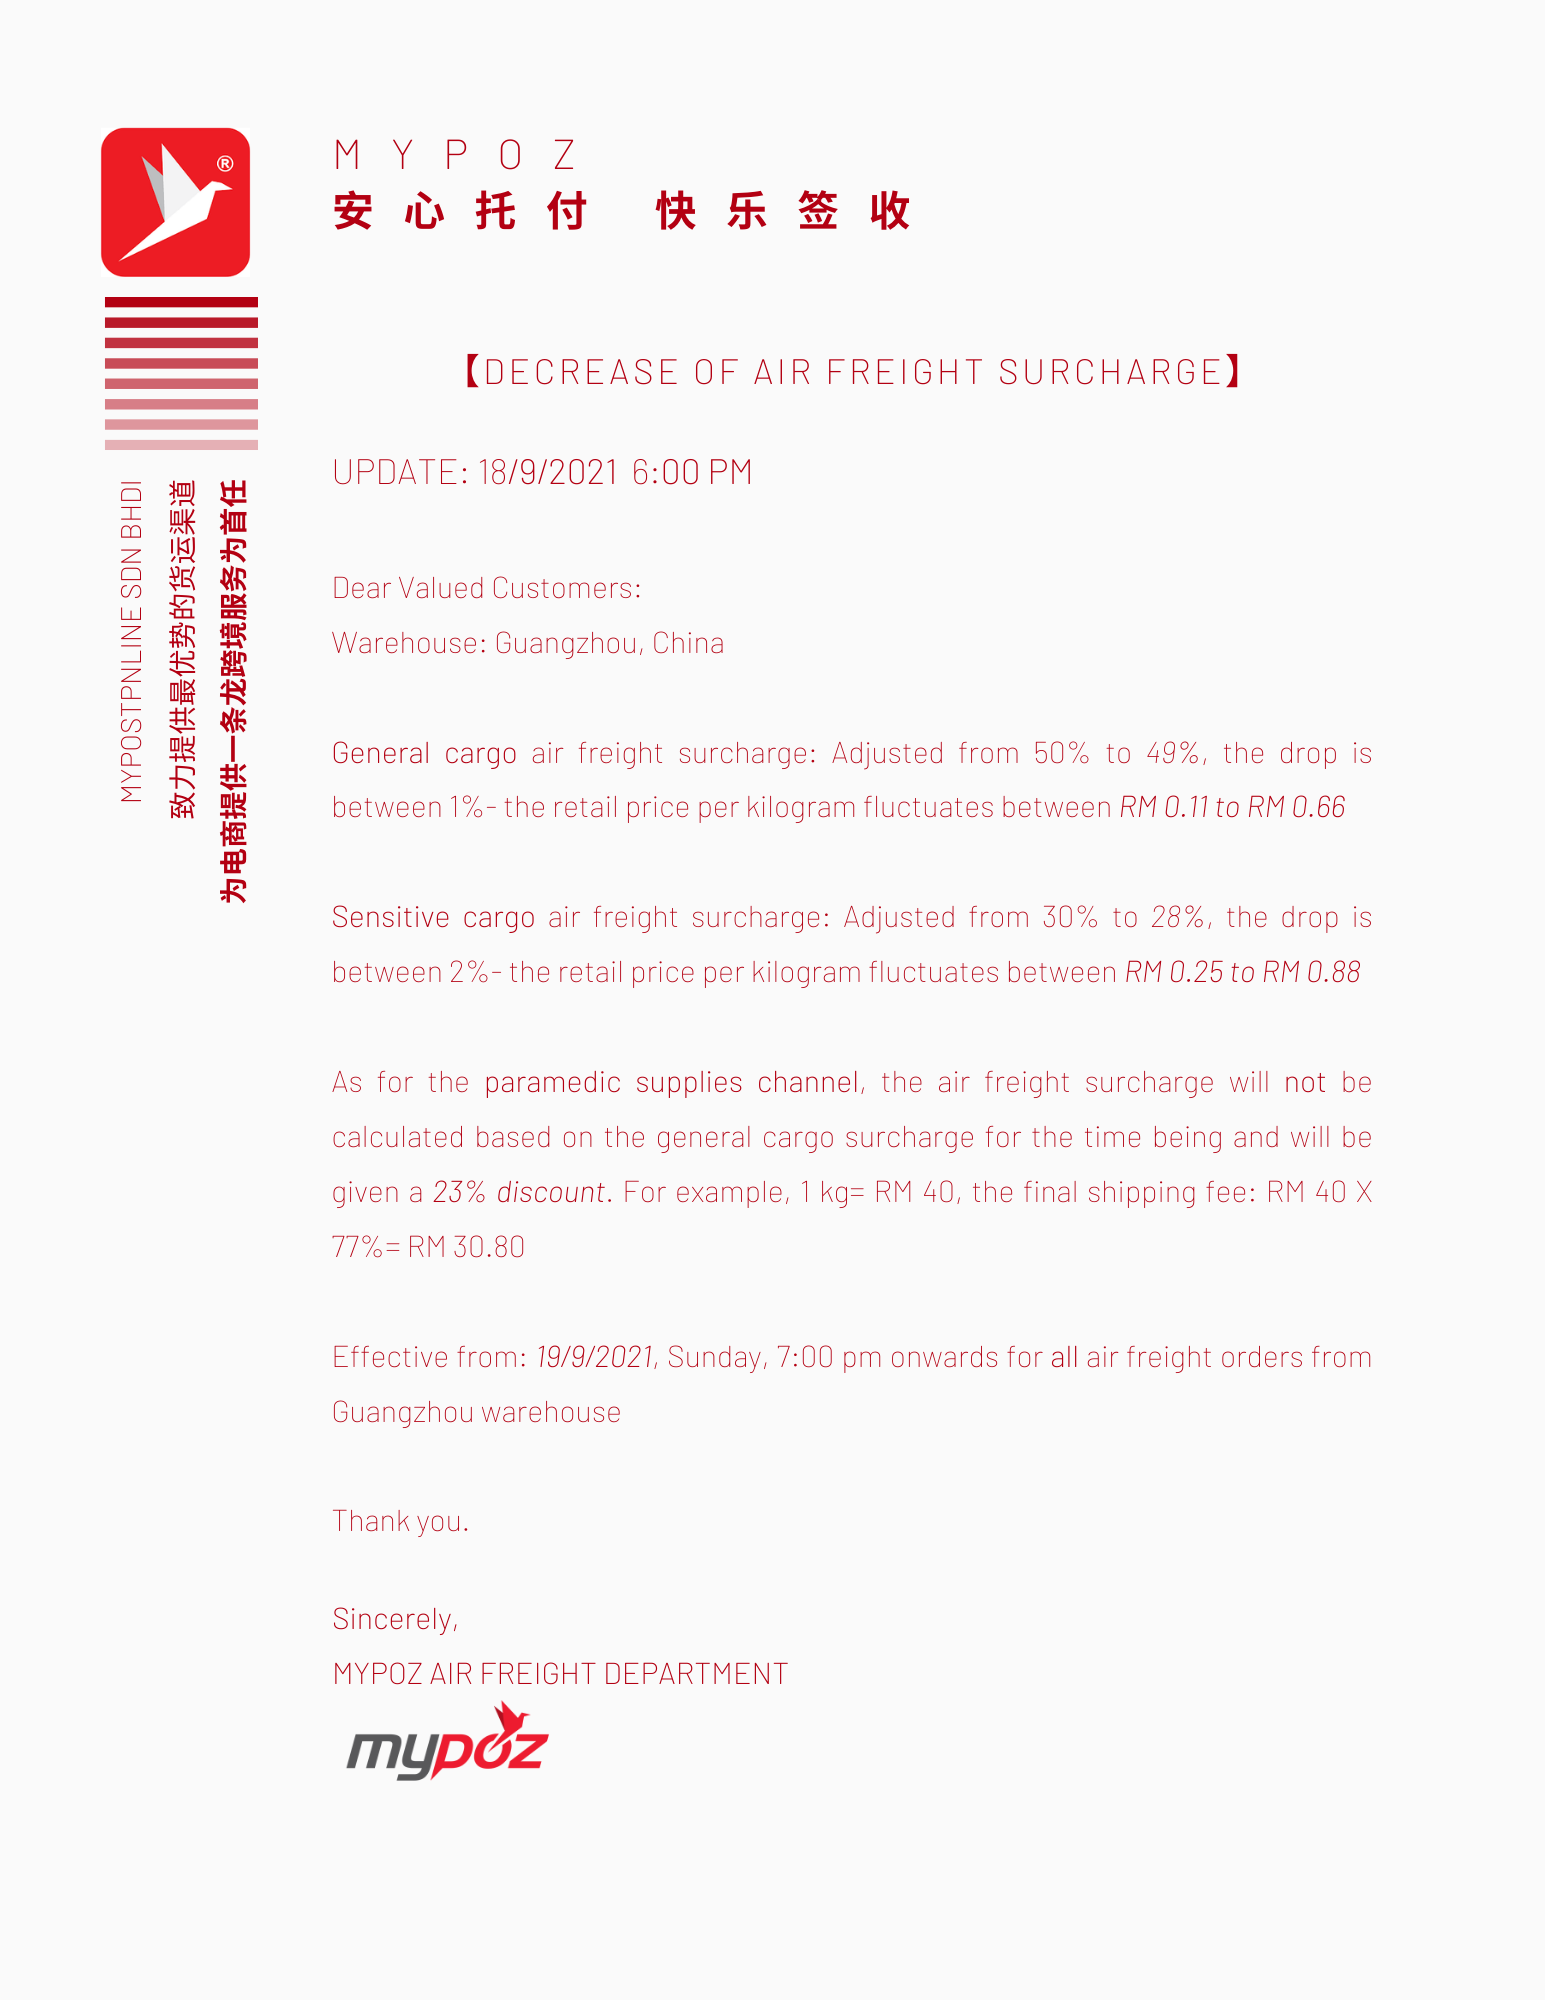 【NOTICE】DECREASE OF AIR FREIGHT SURCHARGE